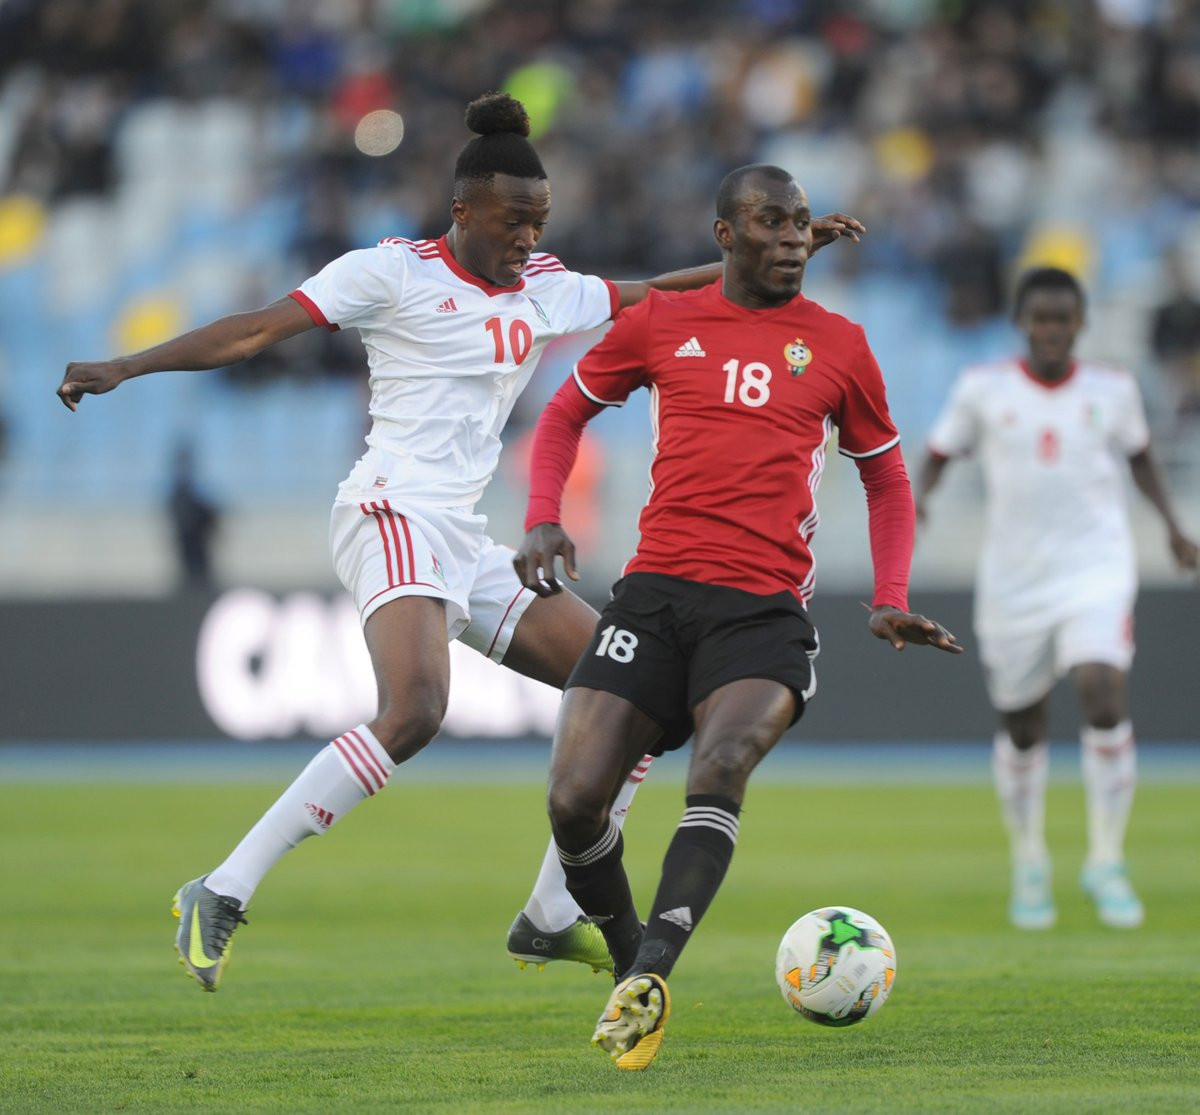 Libya begin African Nations Championship campaign in style with win over Equatorial Guinea